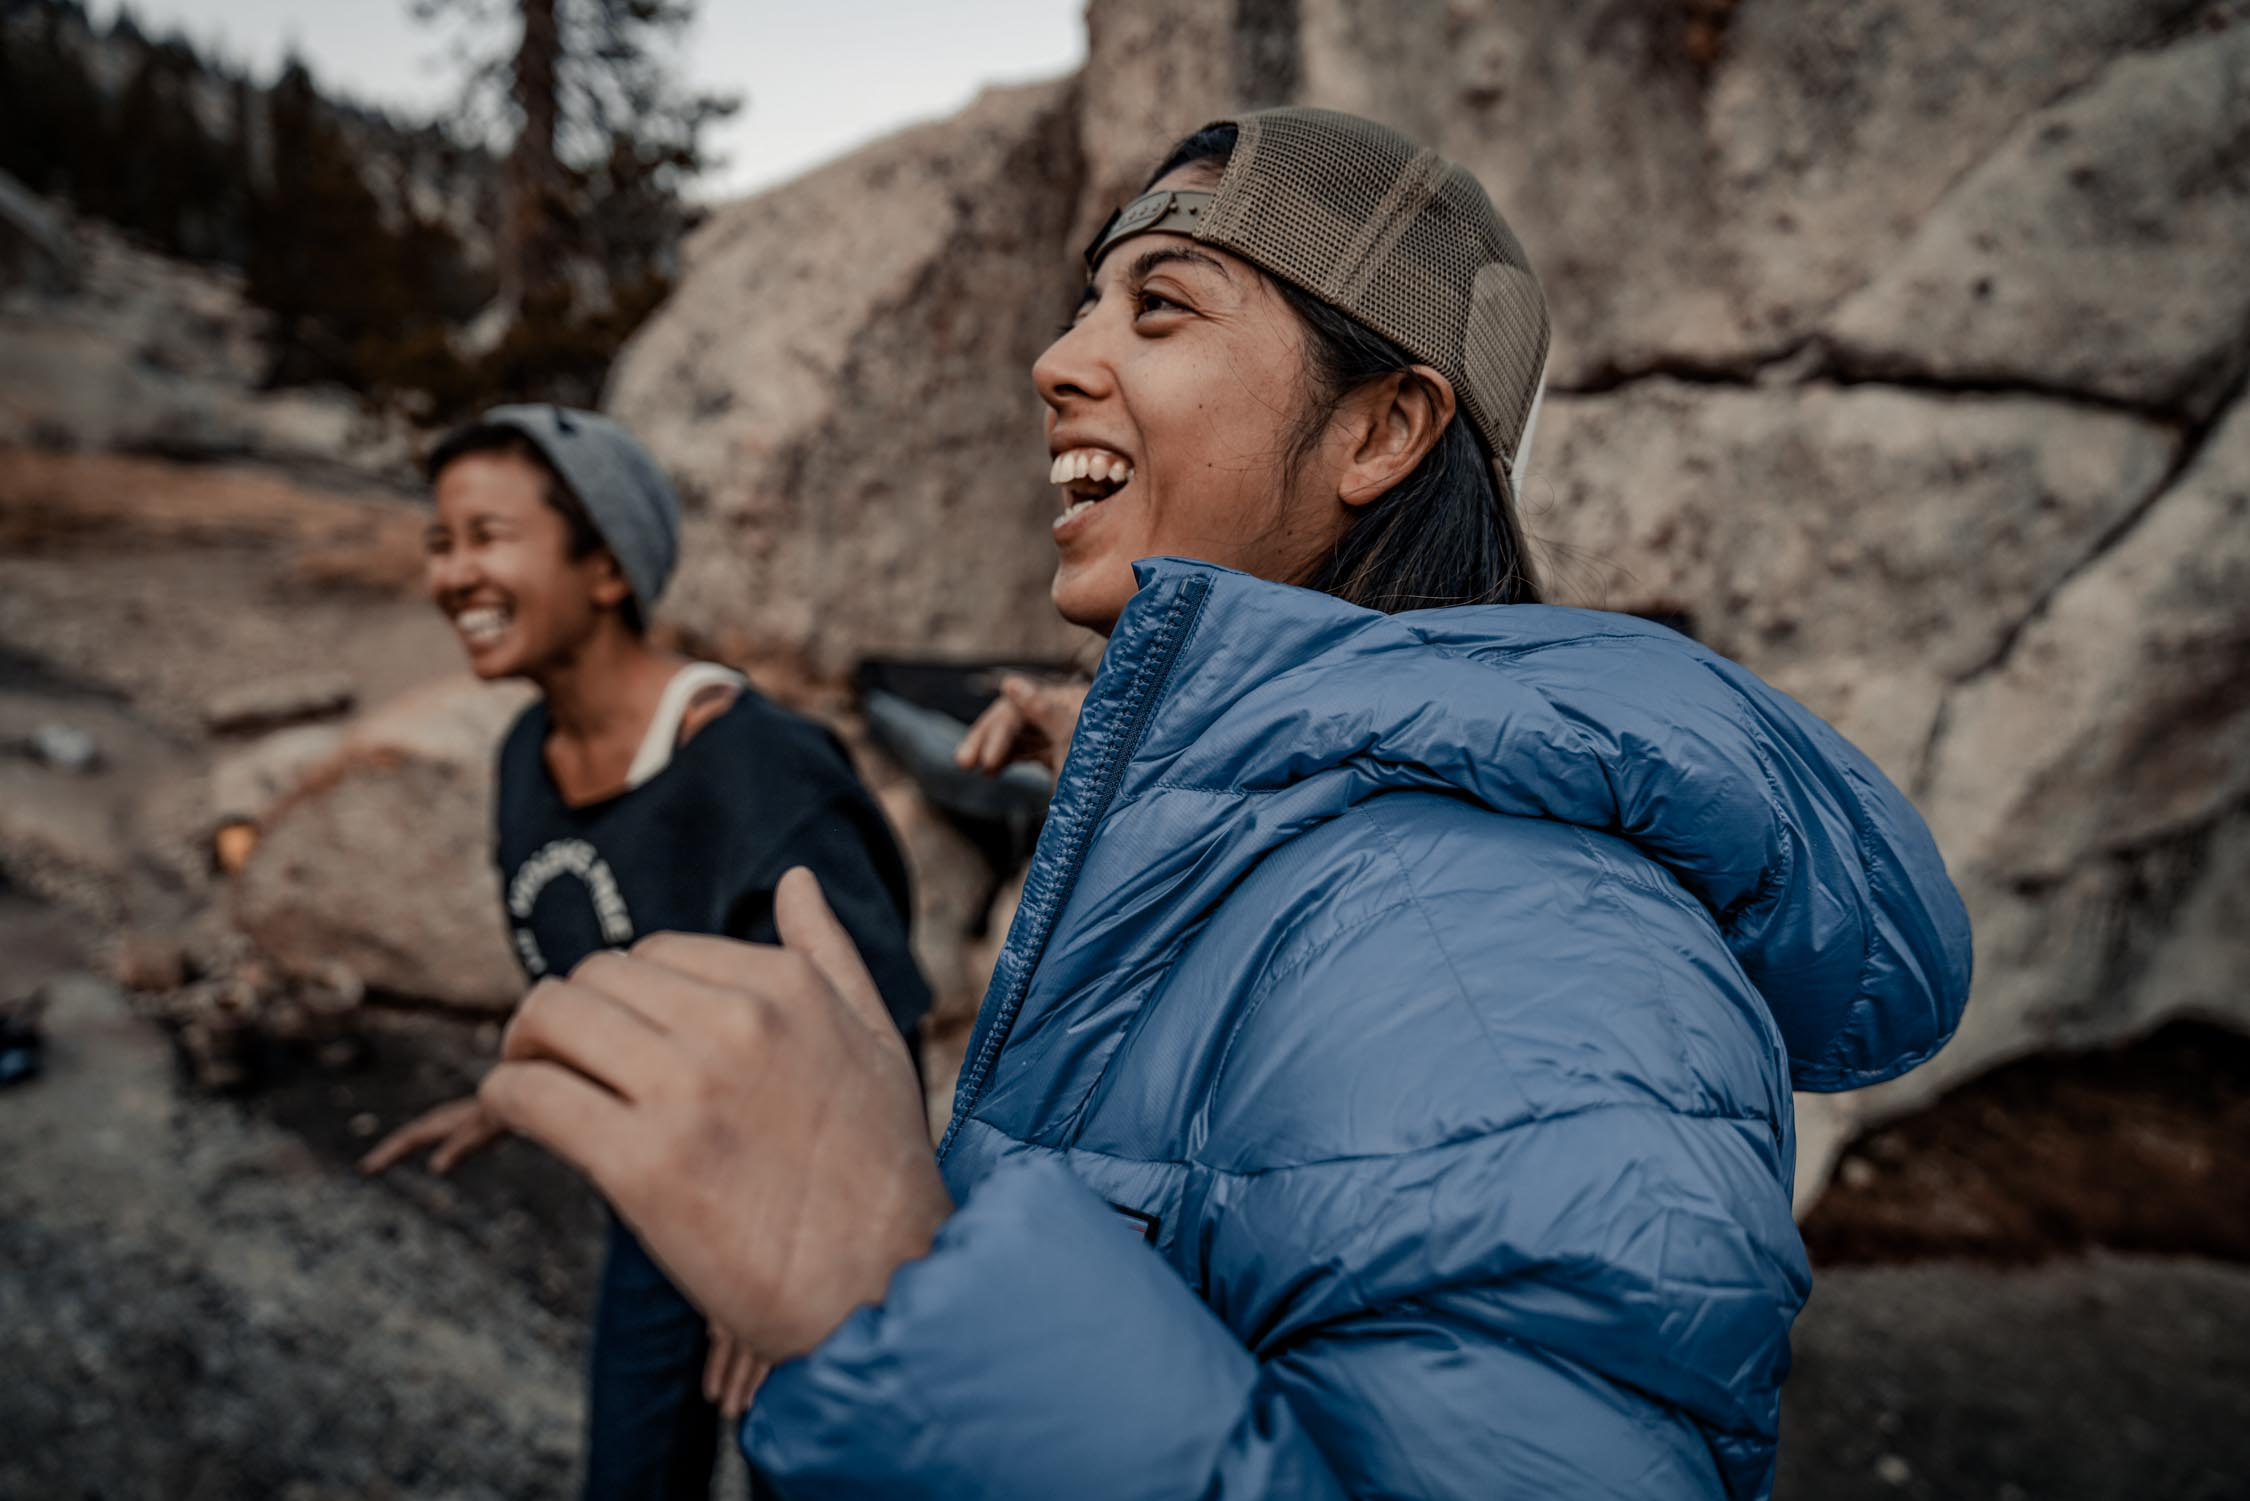 climbers laughing and smiling